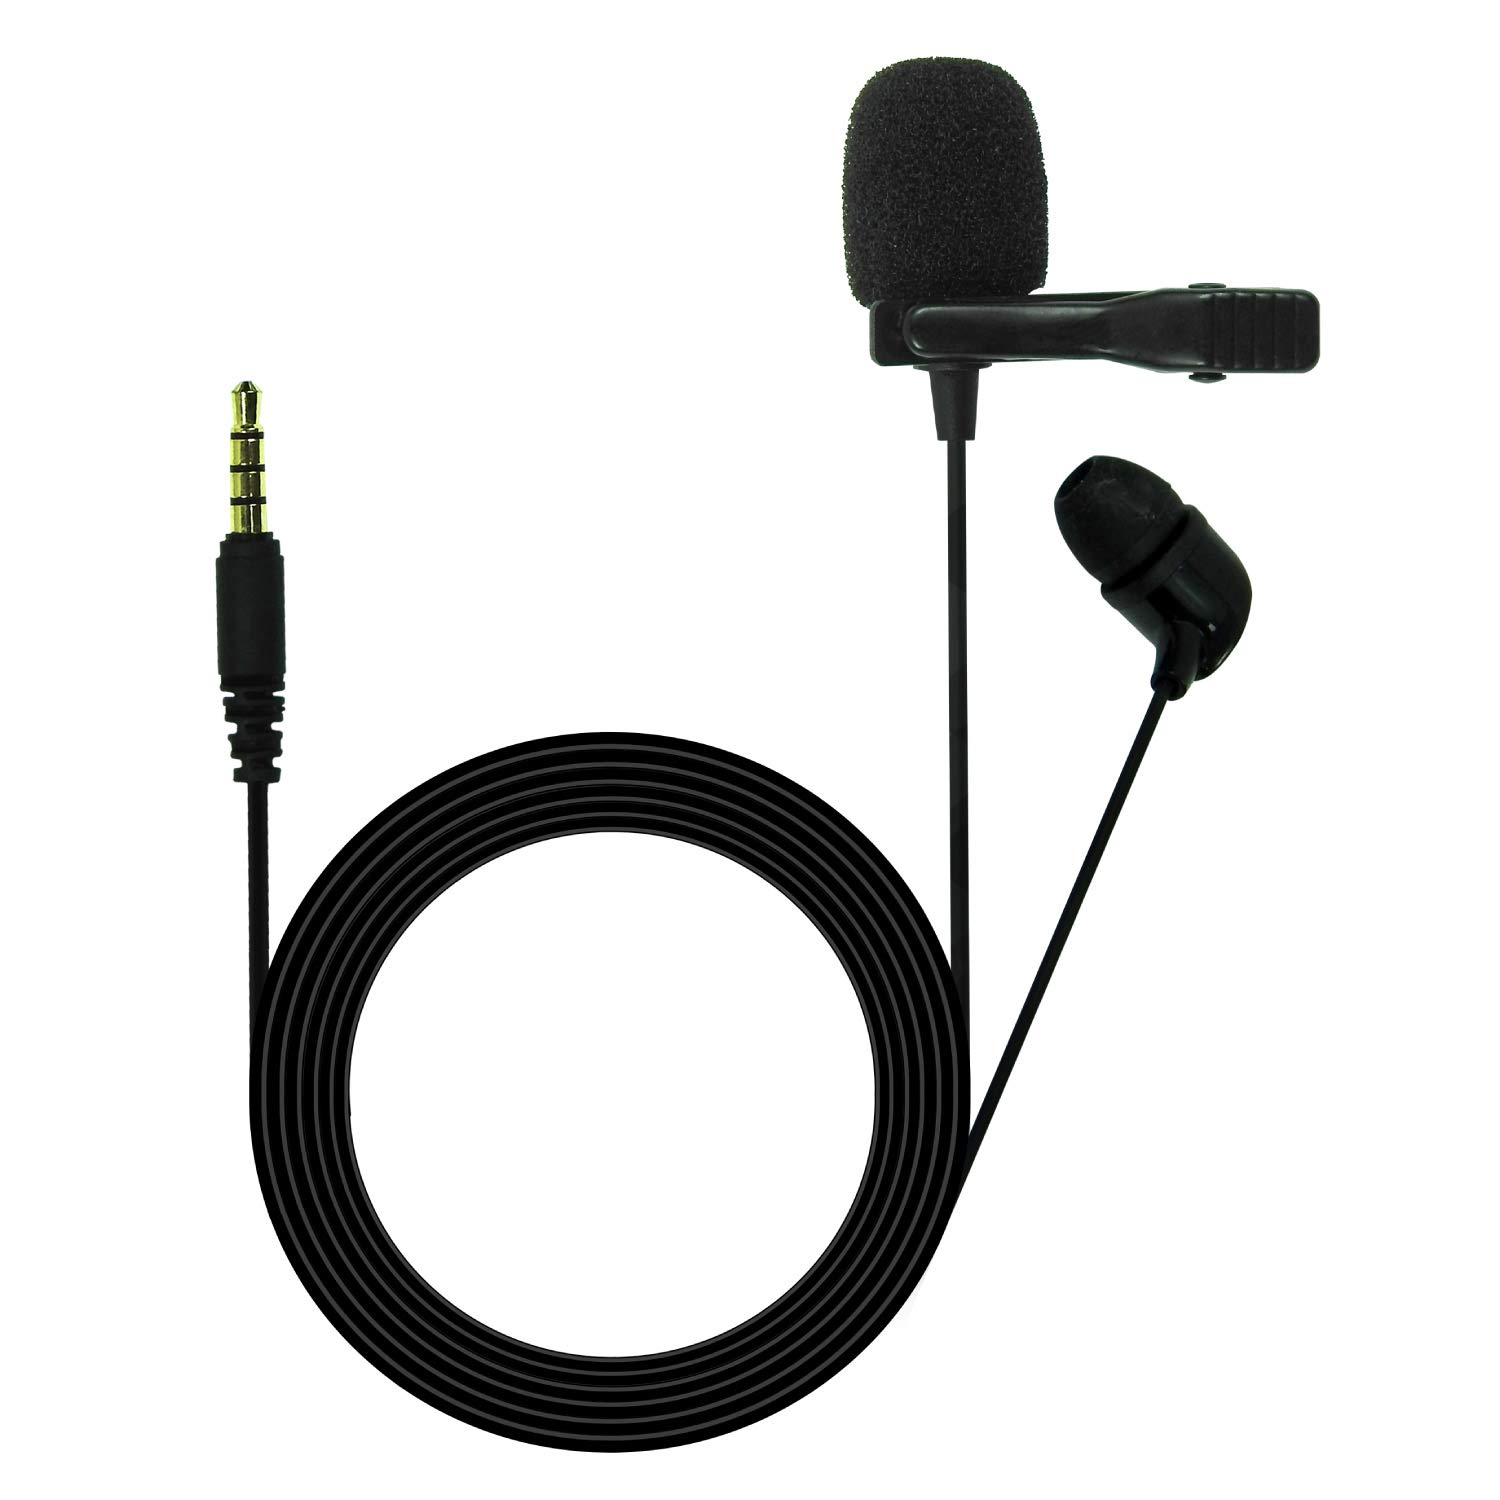 JBL Commercial CSLM20 Omnidirectional Lavalier Microphone, Earphone for calls, Video Conferences, and Monitoring